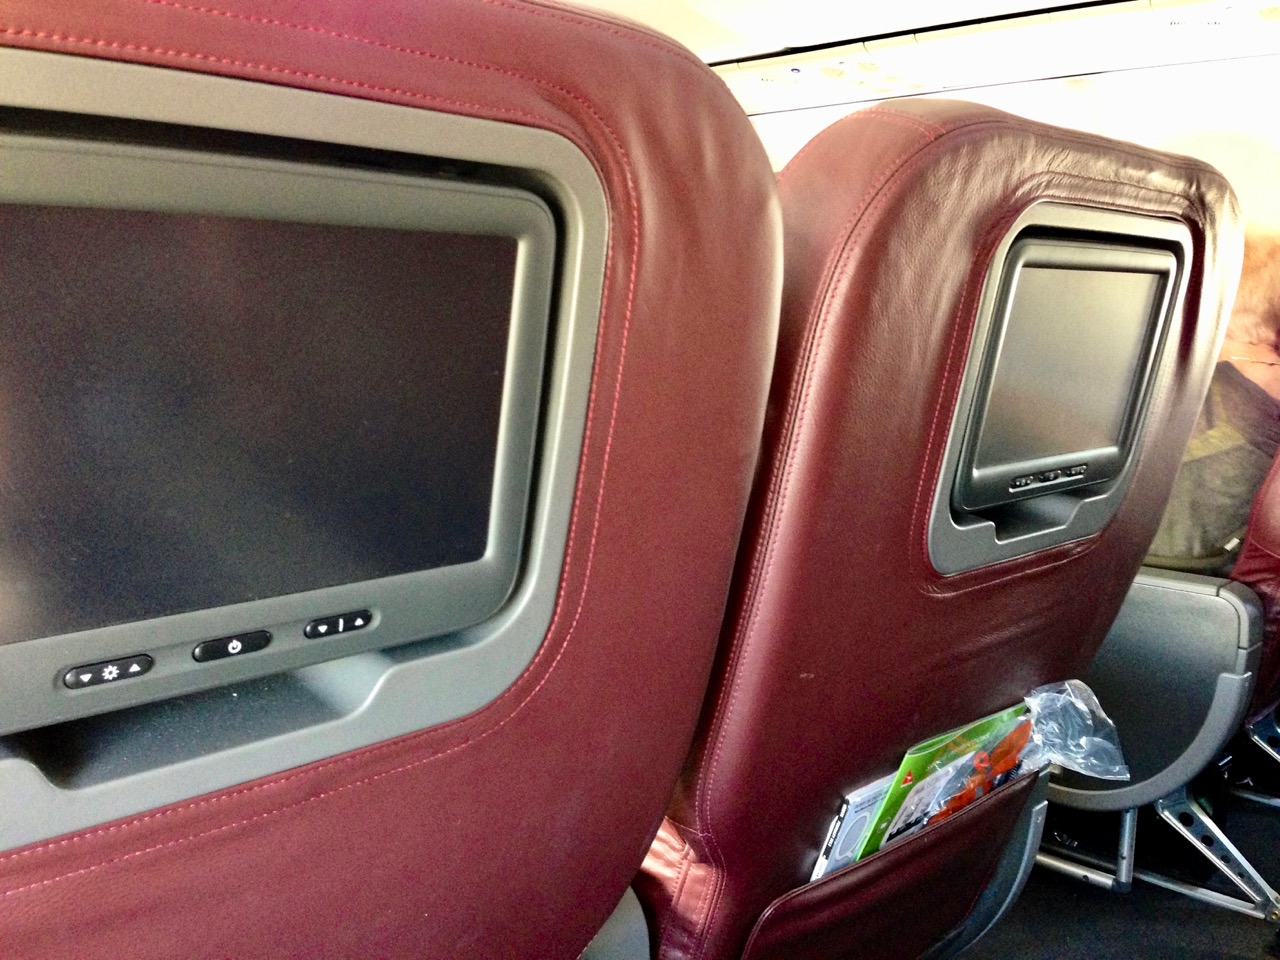 Qantas 7373 Domestic Business Class | Point Hacks